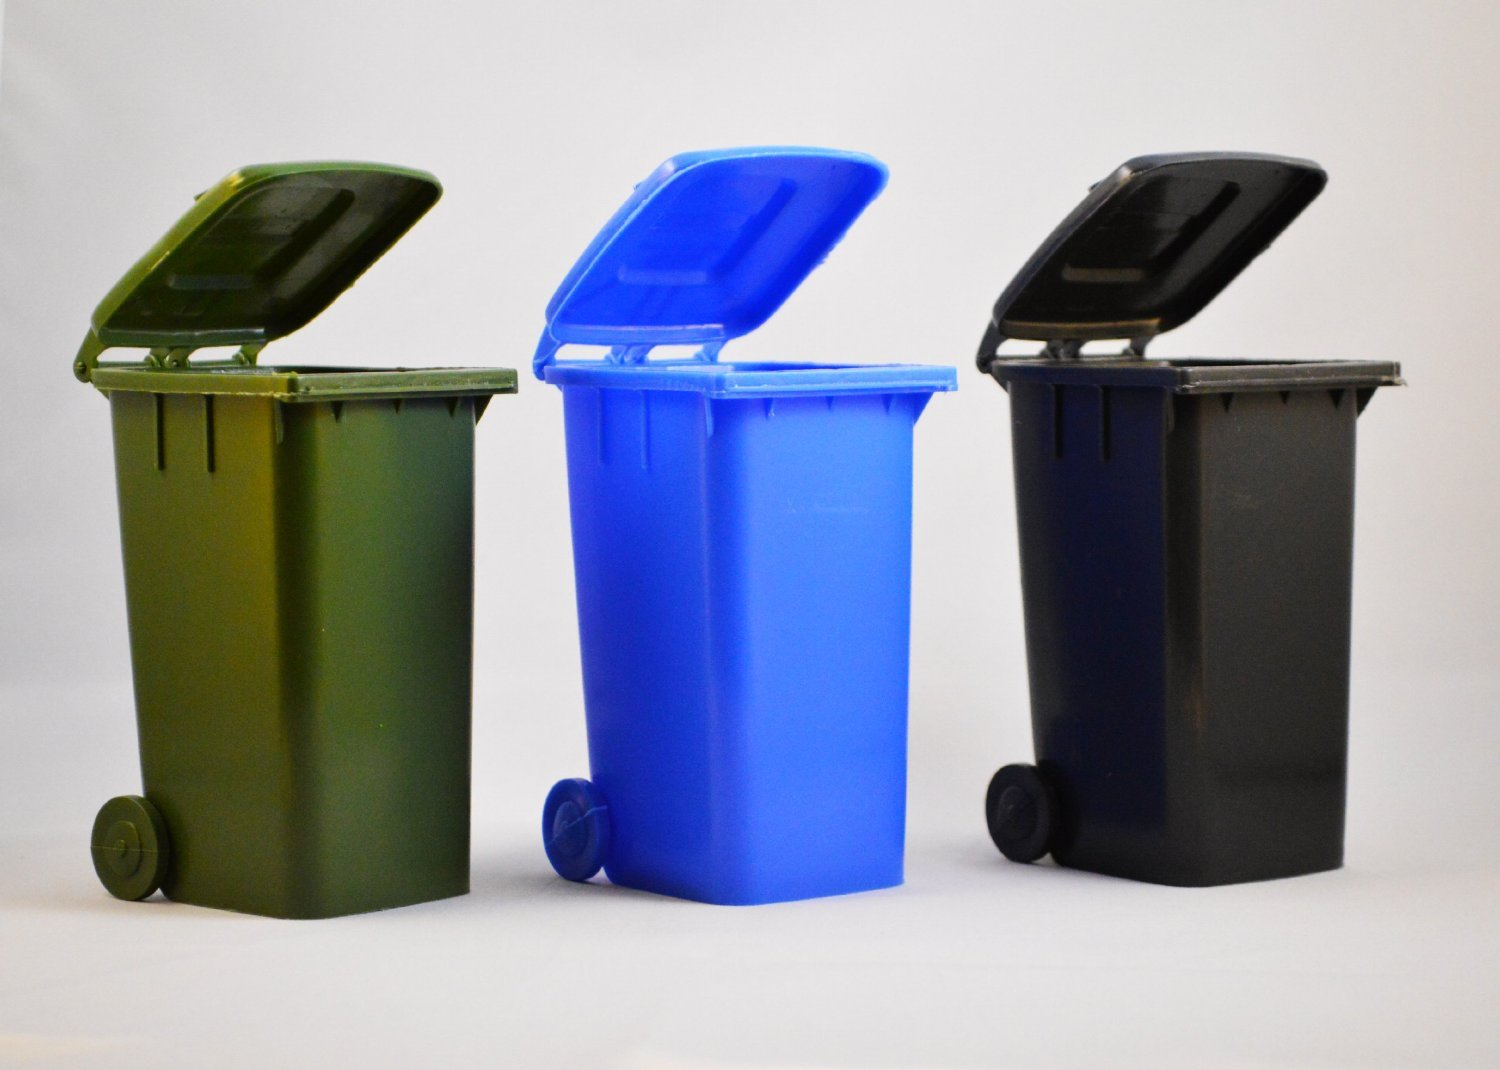 Best Paint To Use For Plastic Trash Cans